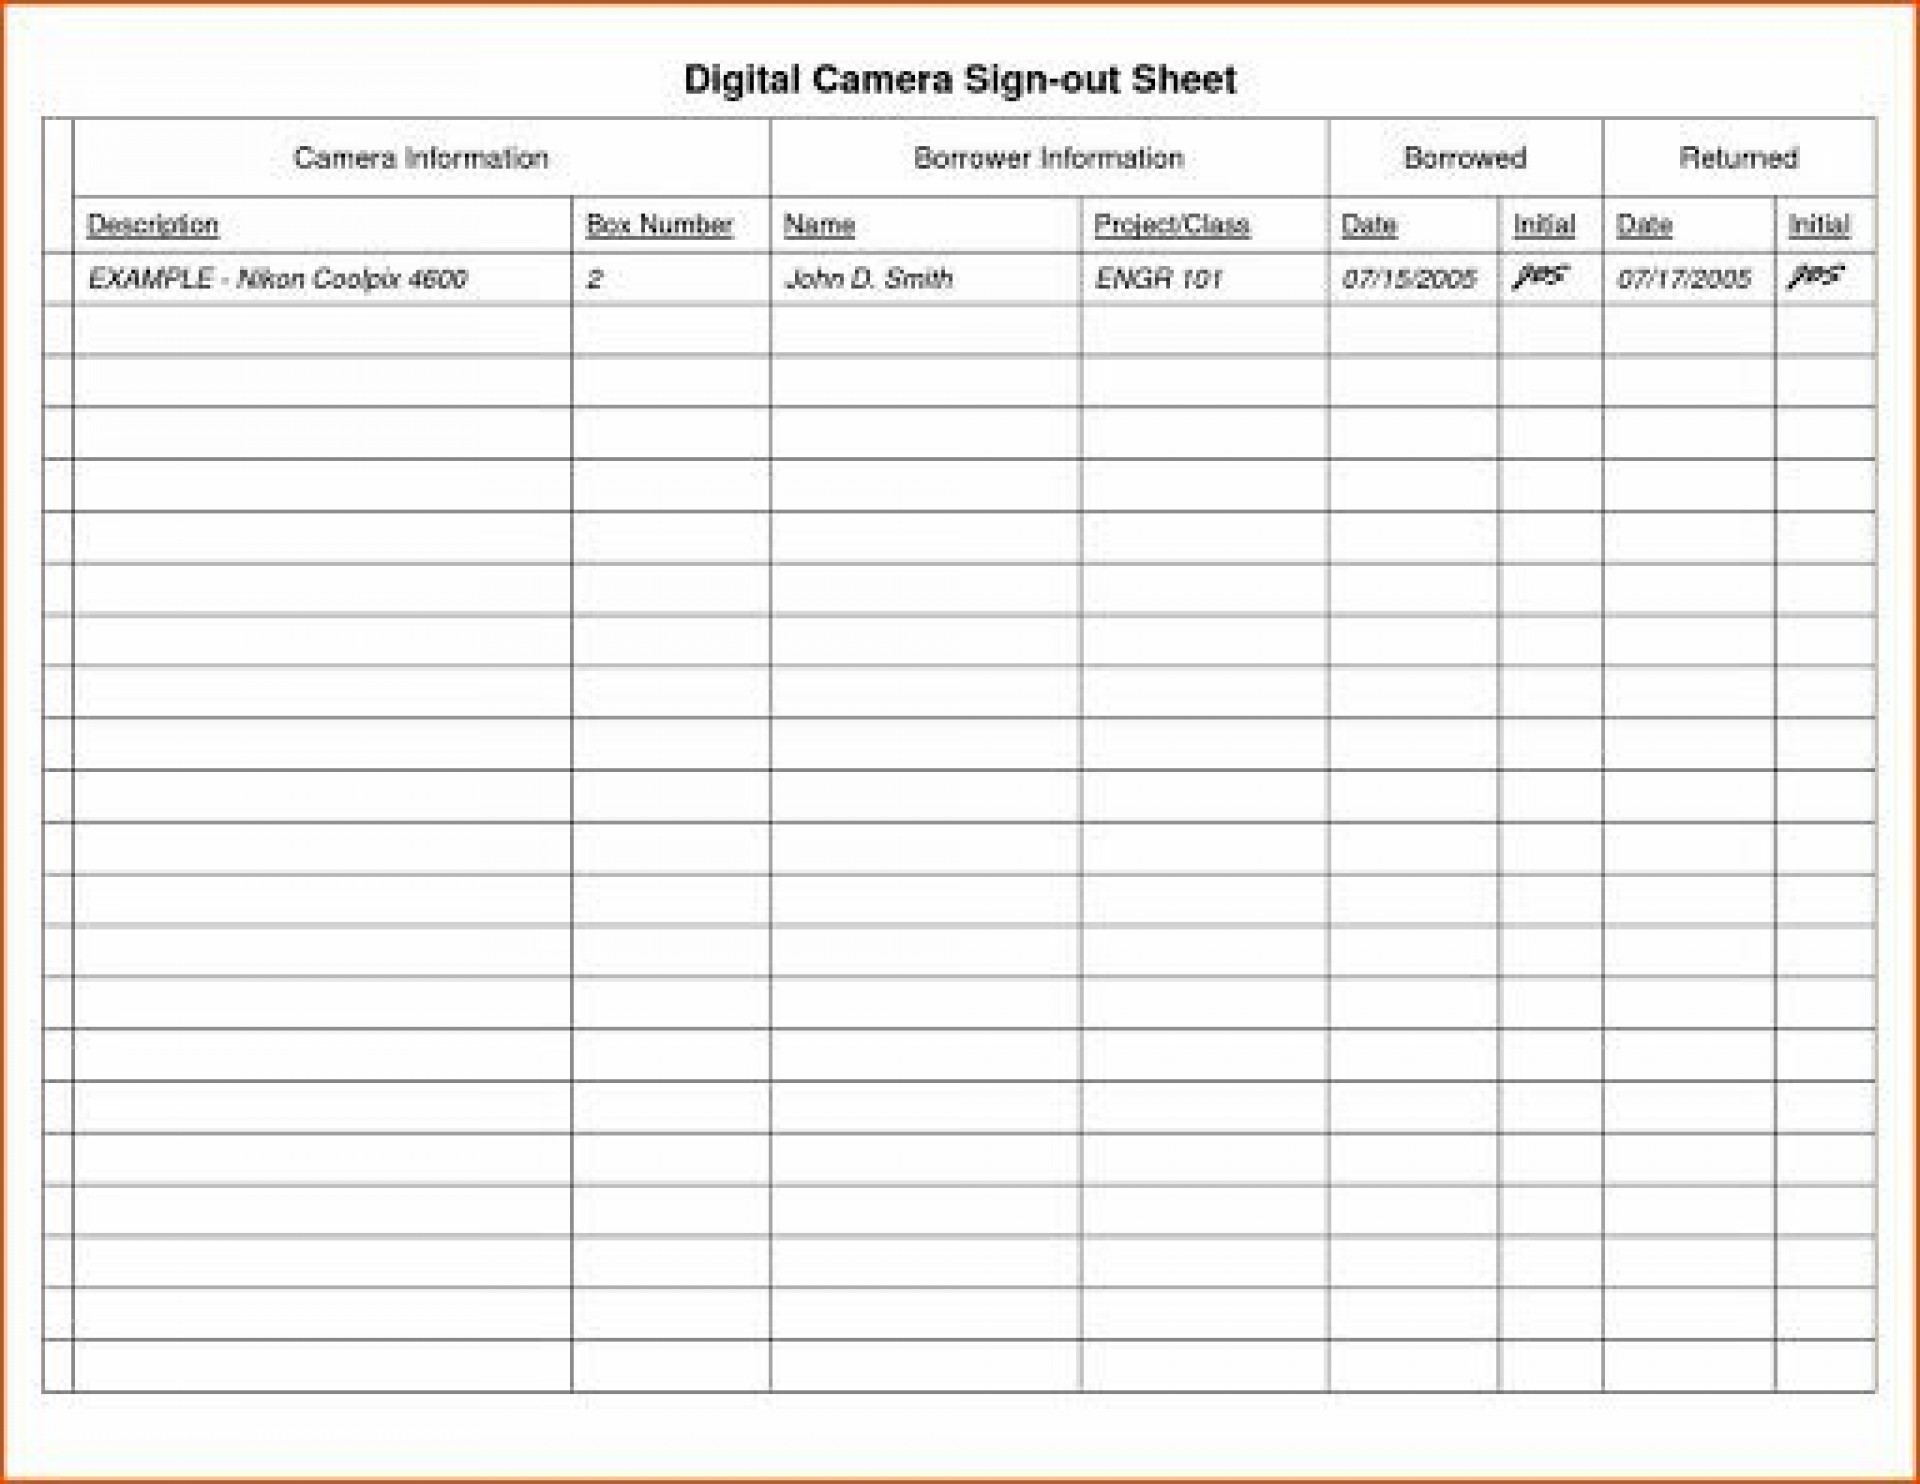 009 Fantastic Equipment Sign Out Sheet Template High Def  Pdf Free Printable1920